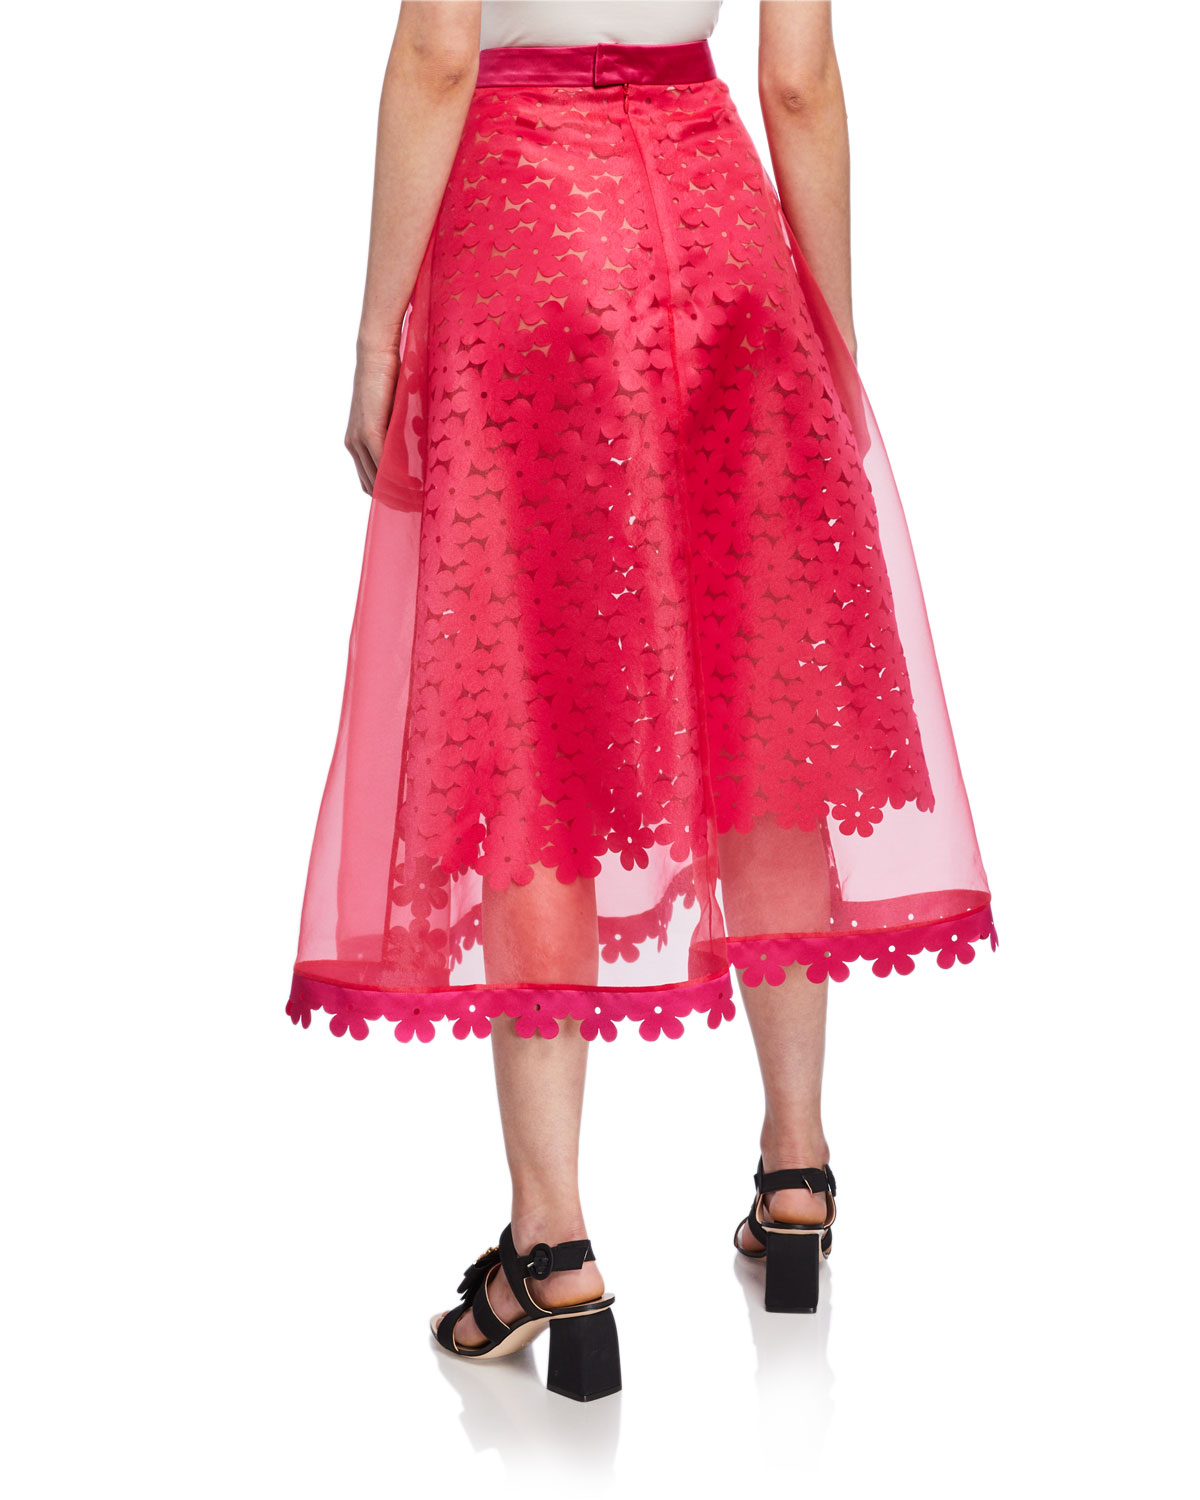 852ddd7219 Paskal Double-Layered Laser-Cut Floral Midi Skirt   Neiman Marcus